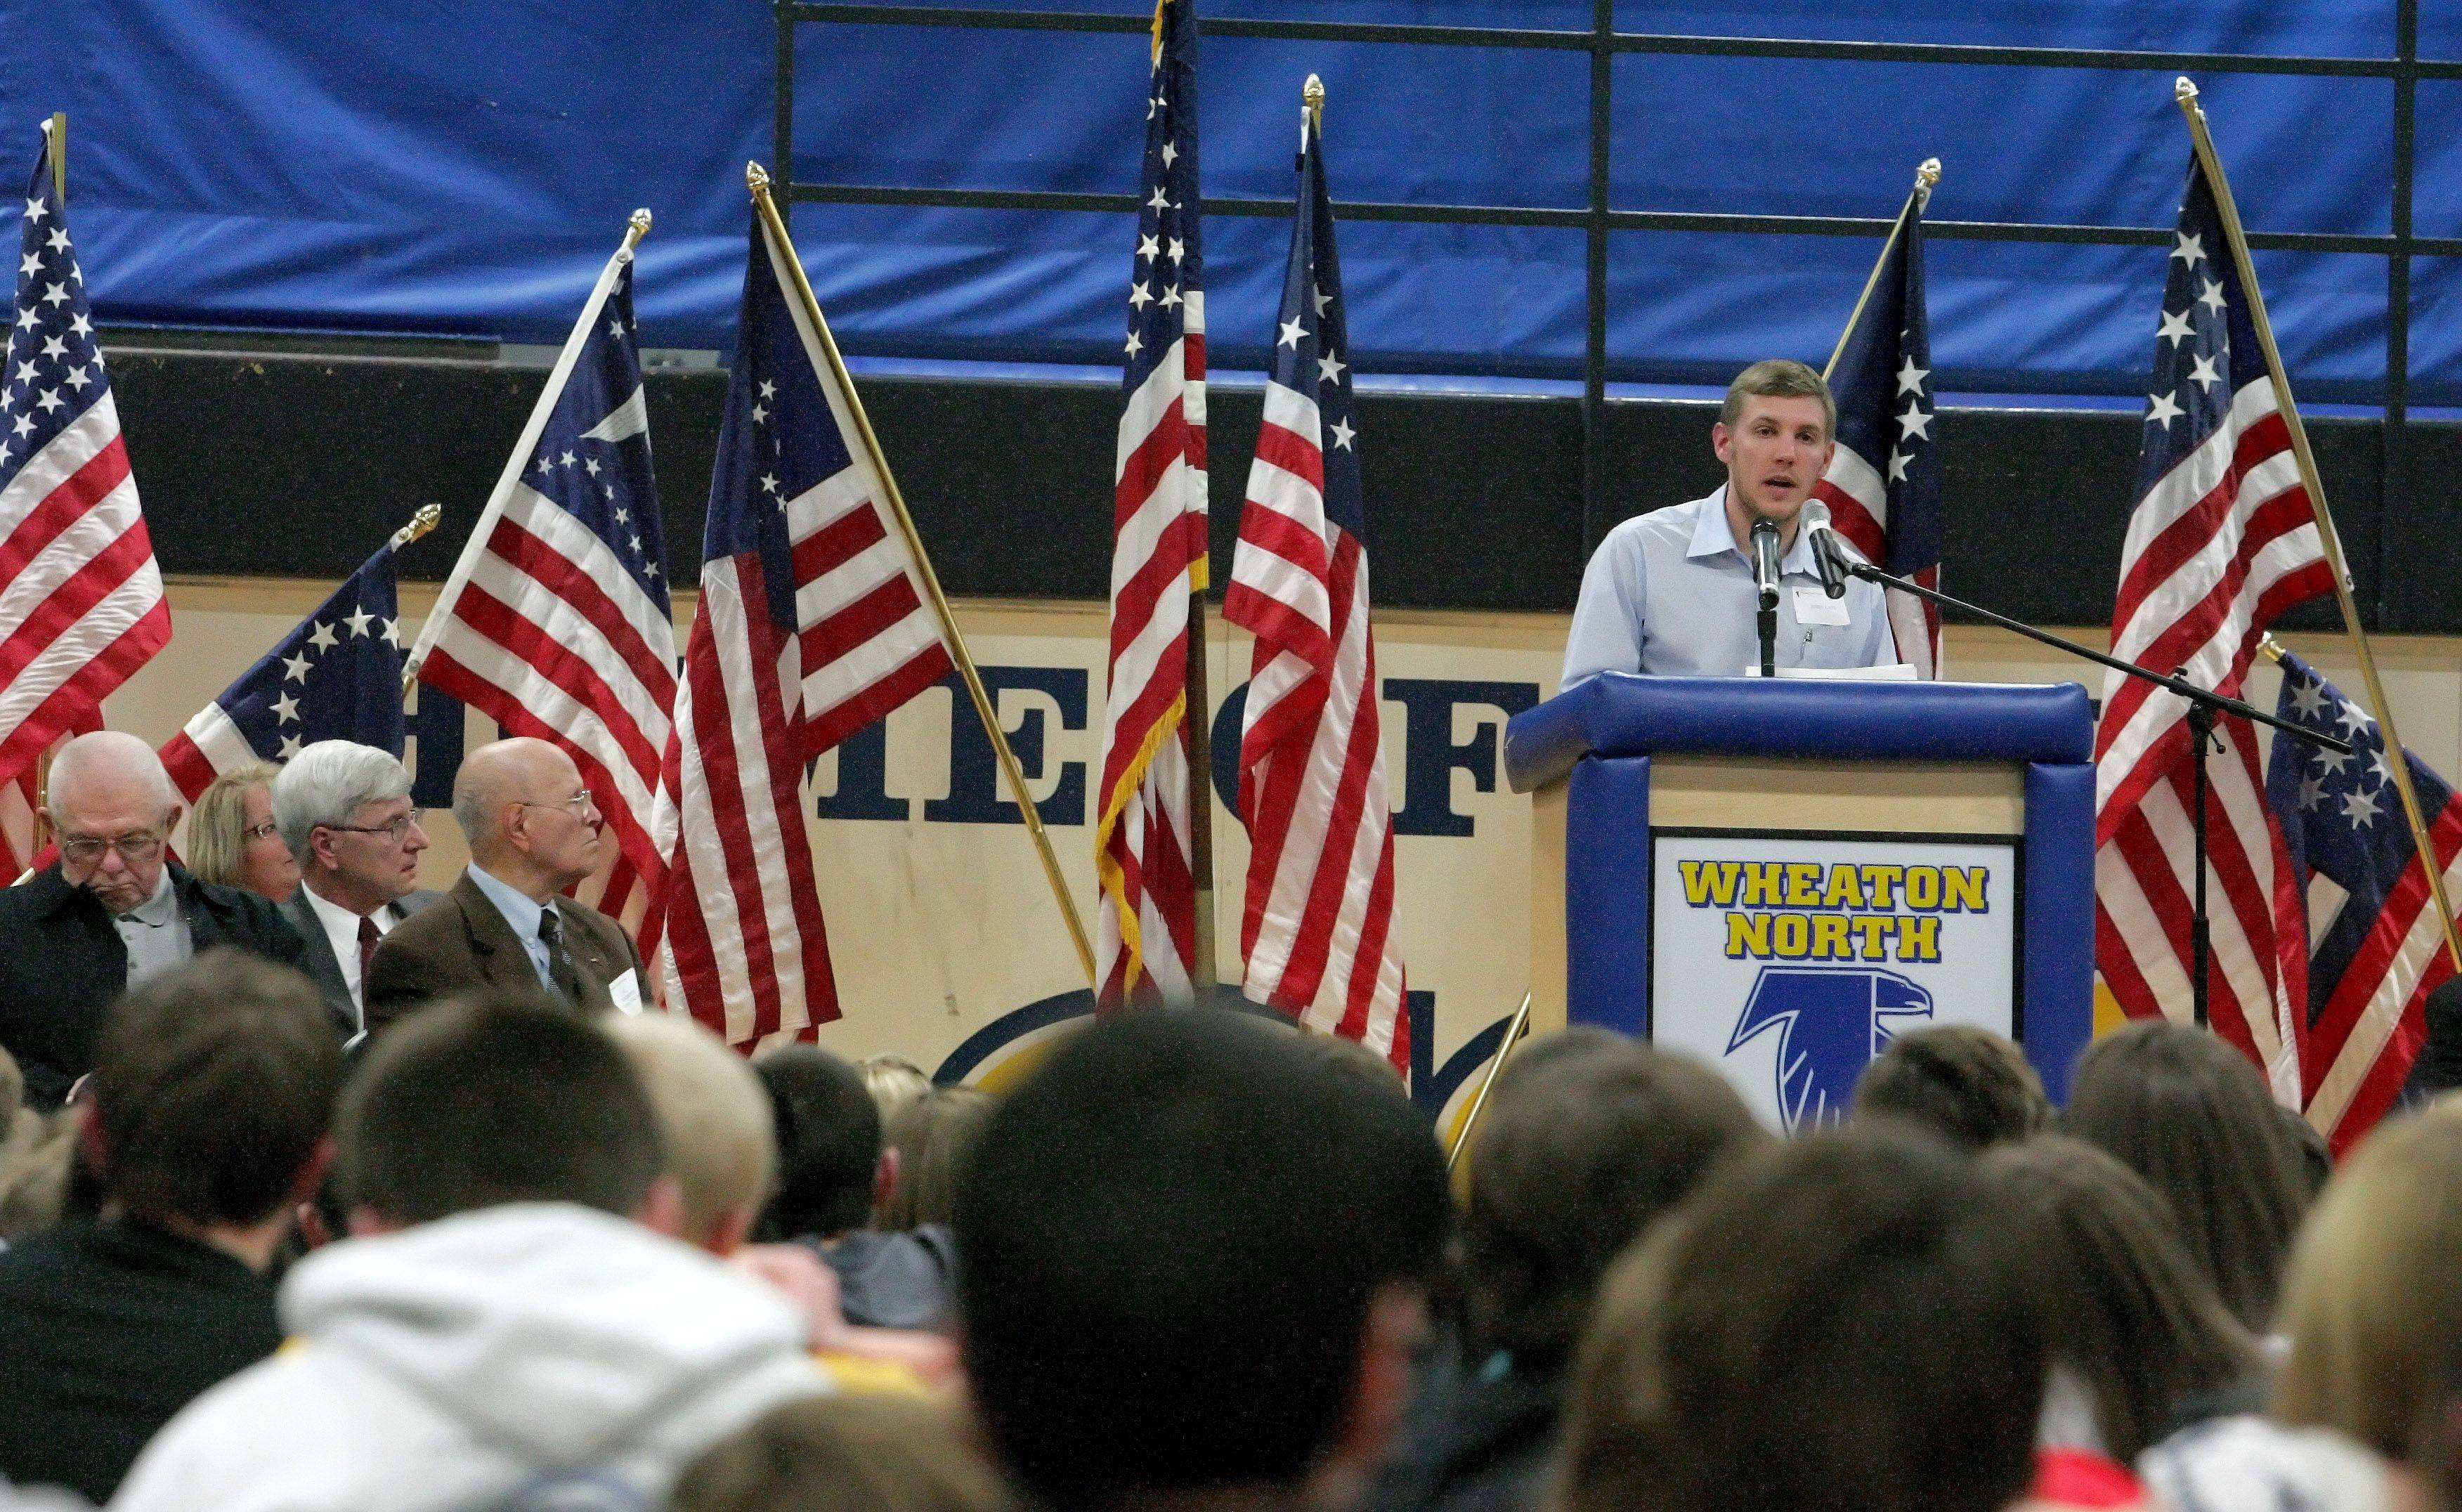 Bobby Kaye speaks to students and veterans Thursday during a Veterans Day event honoring his friend and Medal of Honor recipient Robert Miller at Wheaton North High School. Kaye is a 2002 graduate of Wheaton Warrenville South and has served two tours of duty in Iraq.